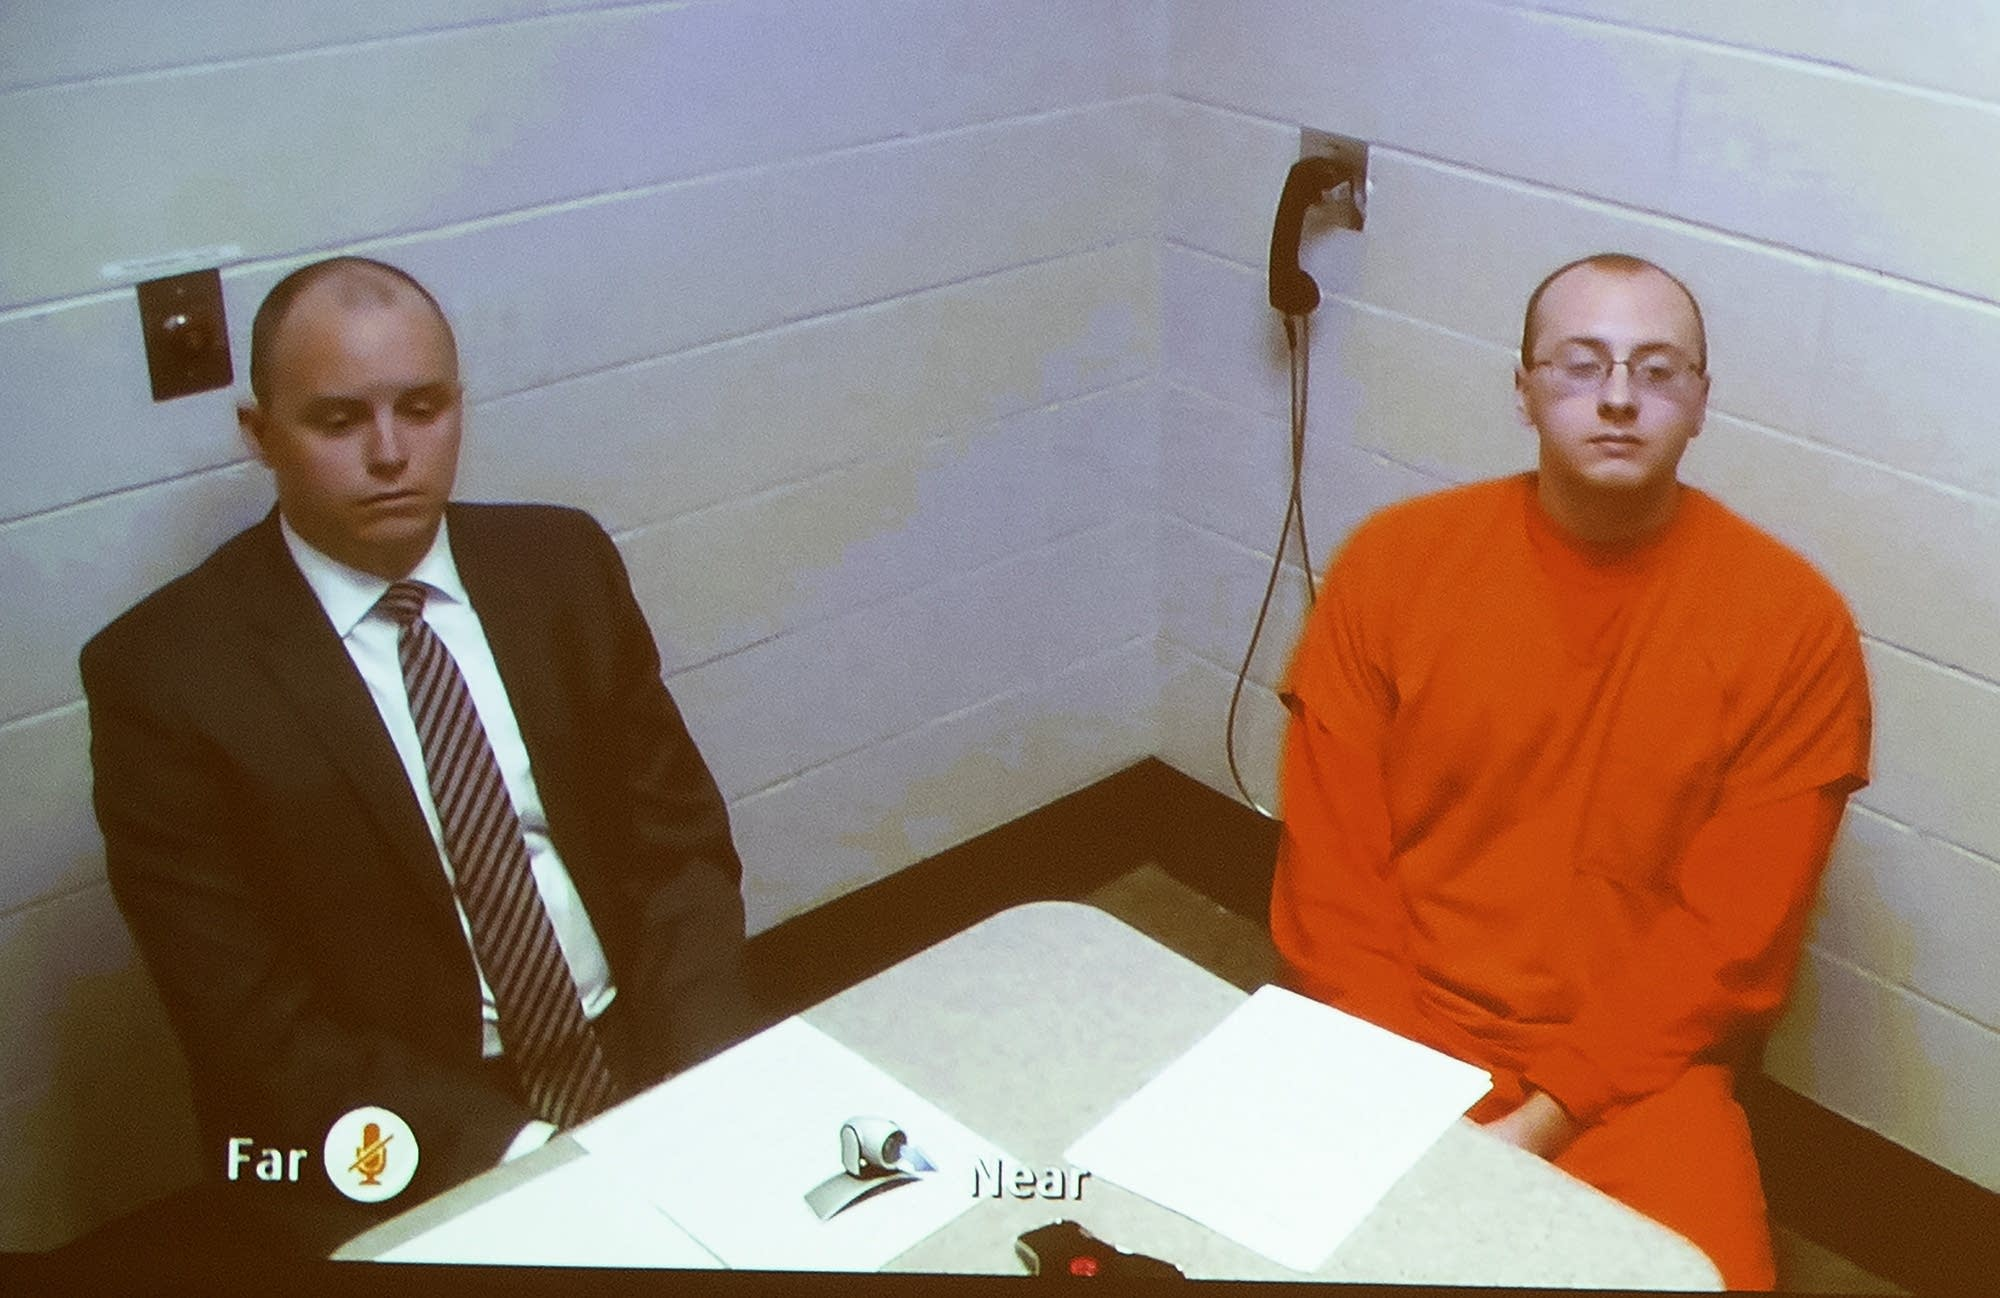 Jake Thomas Patterson makes his first court appearance on video.